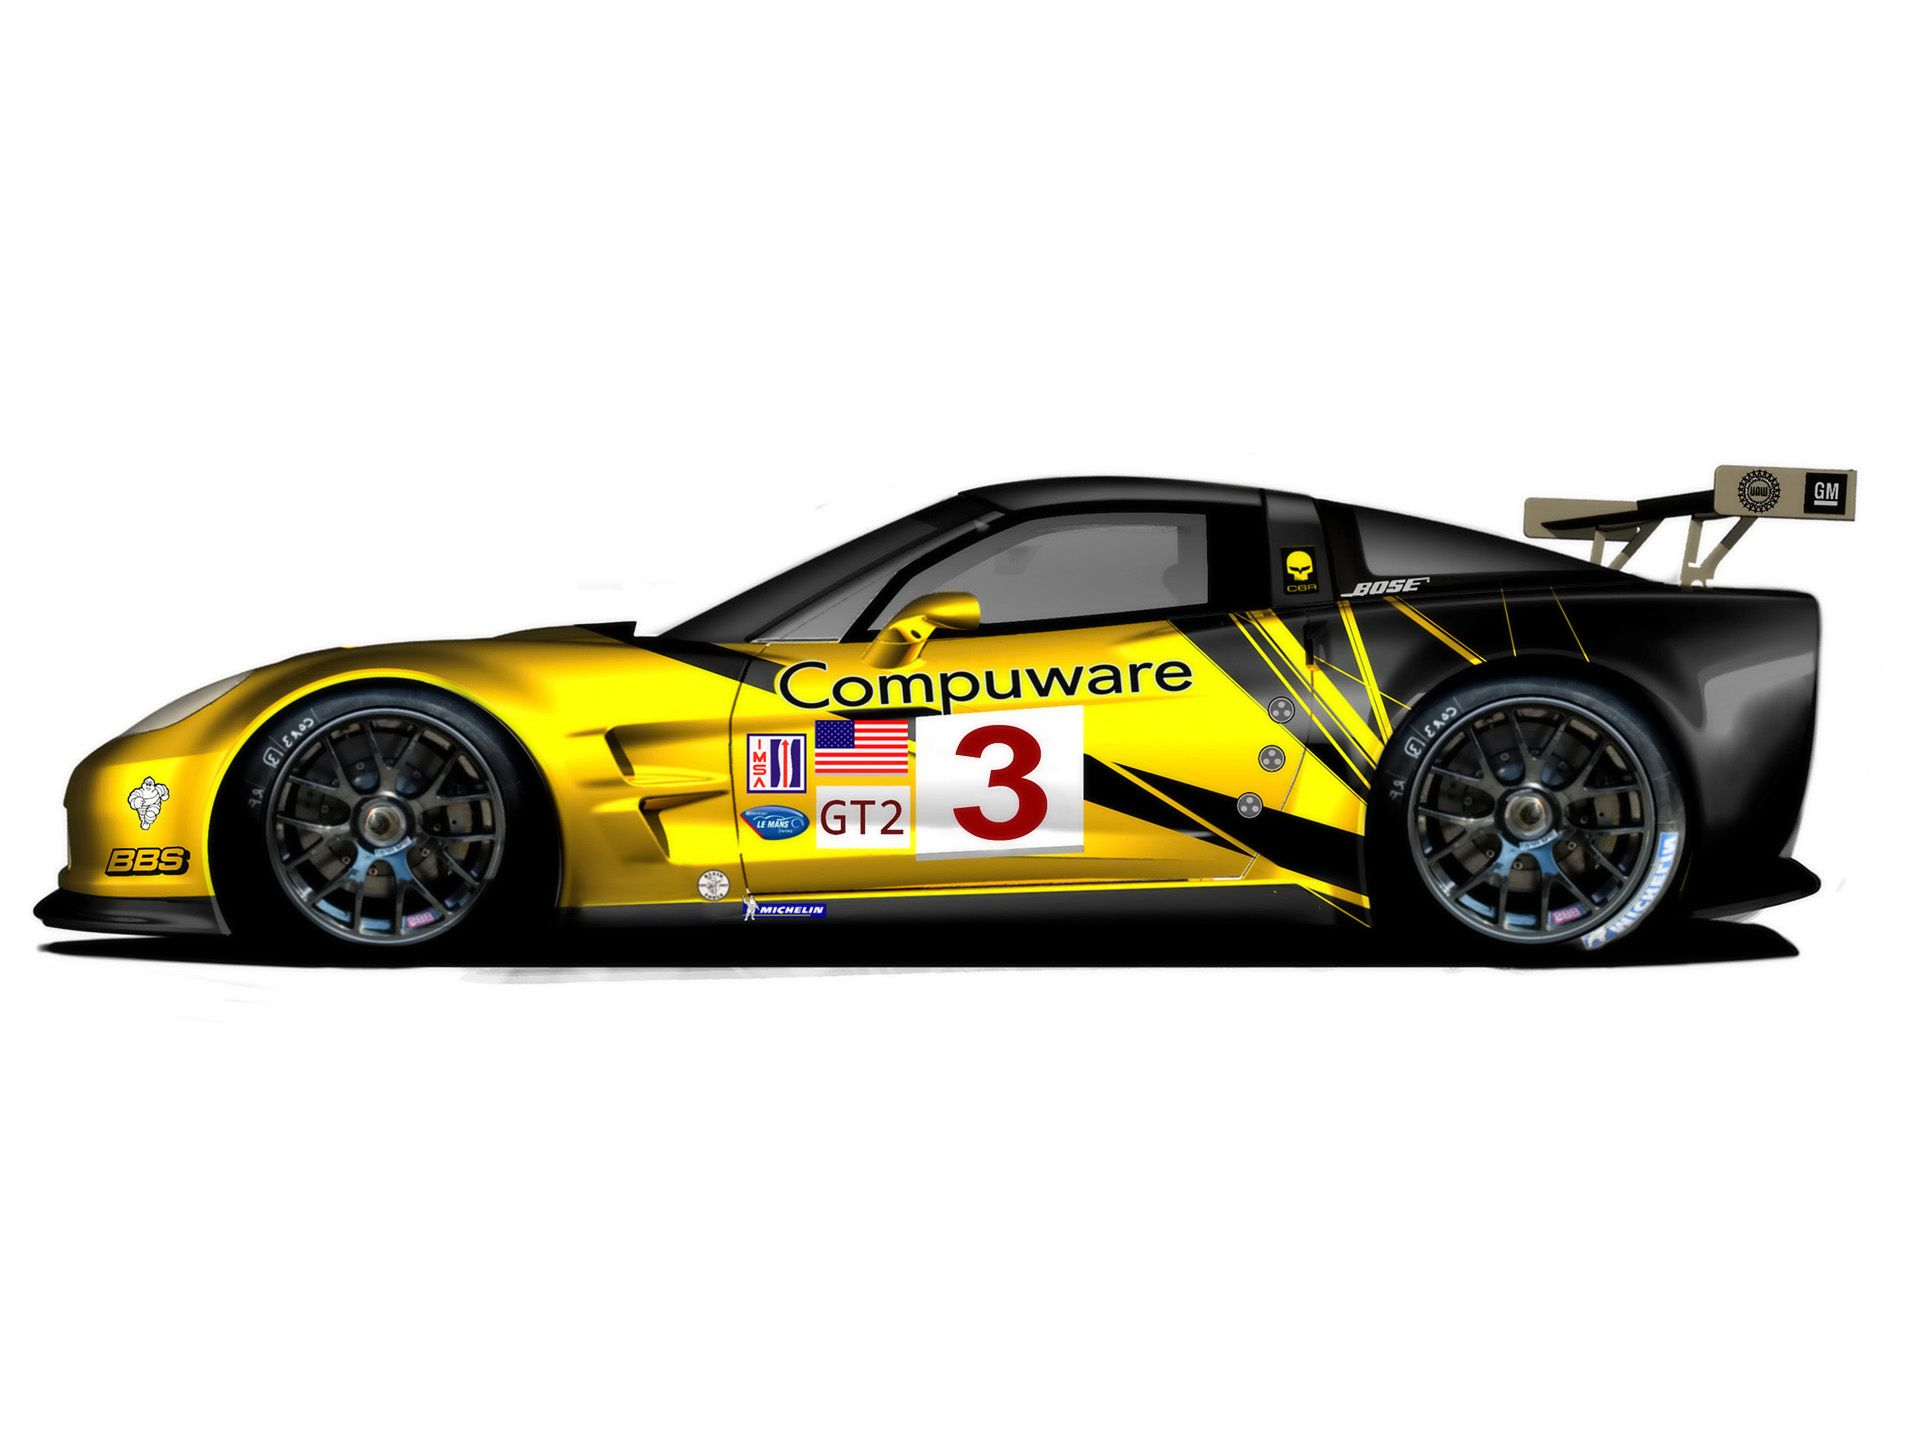 2009 Chevrolet Corvette C6 R Gt2 Side Studio 1920x1440